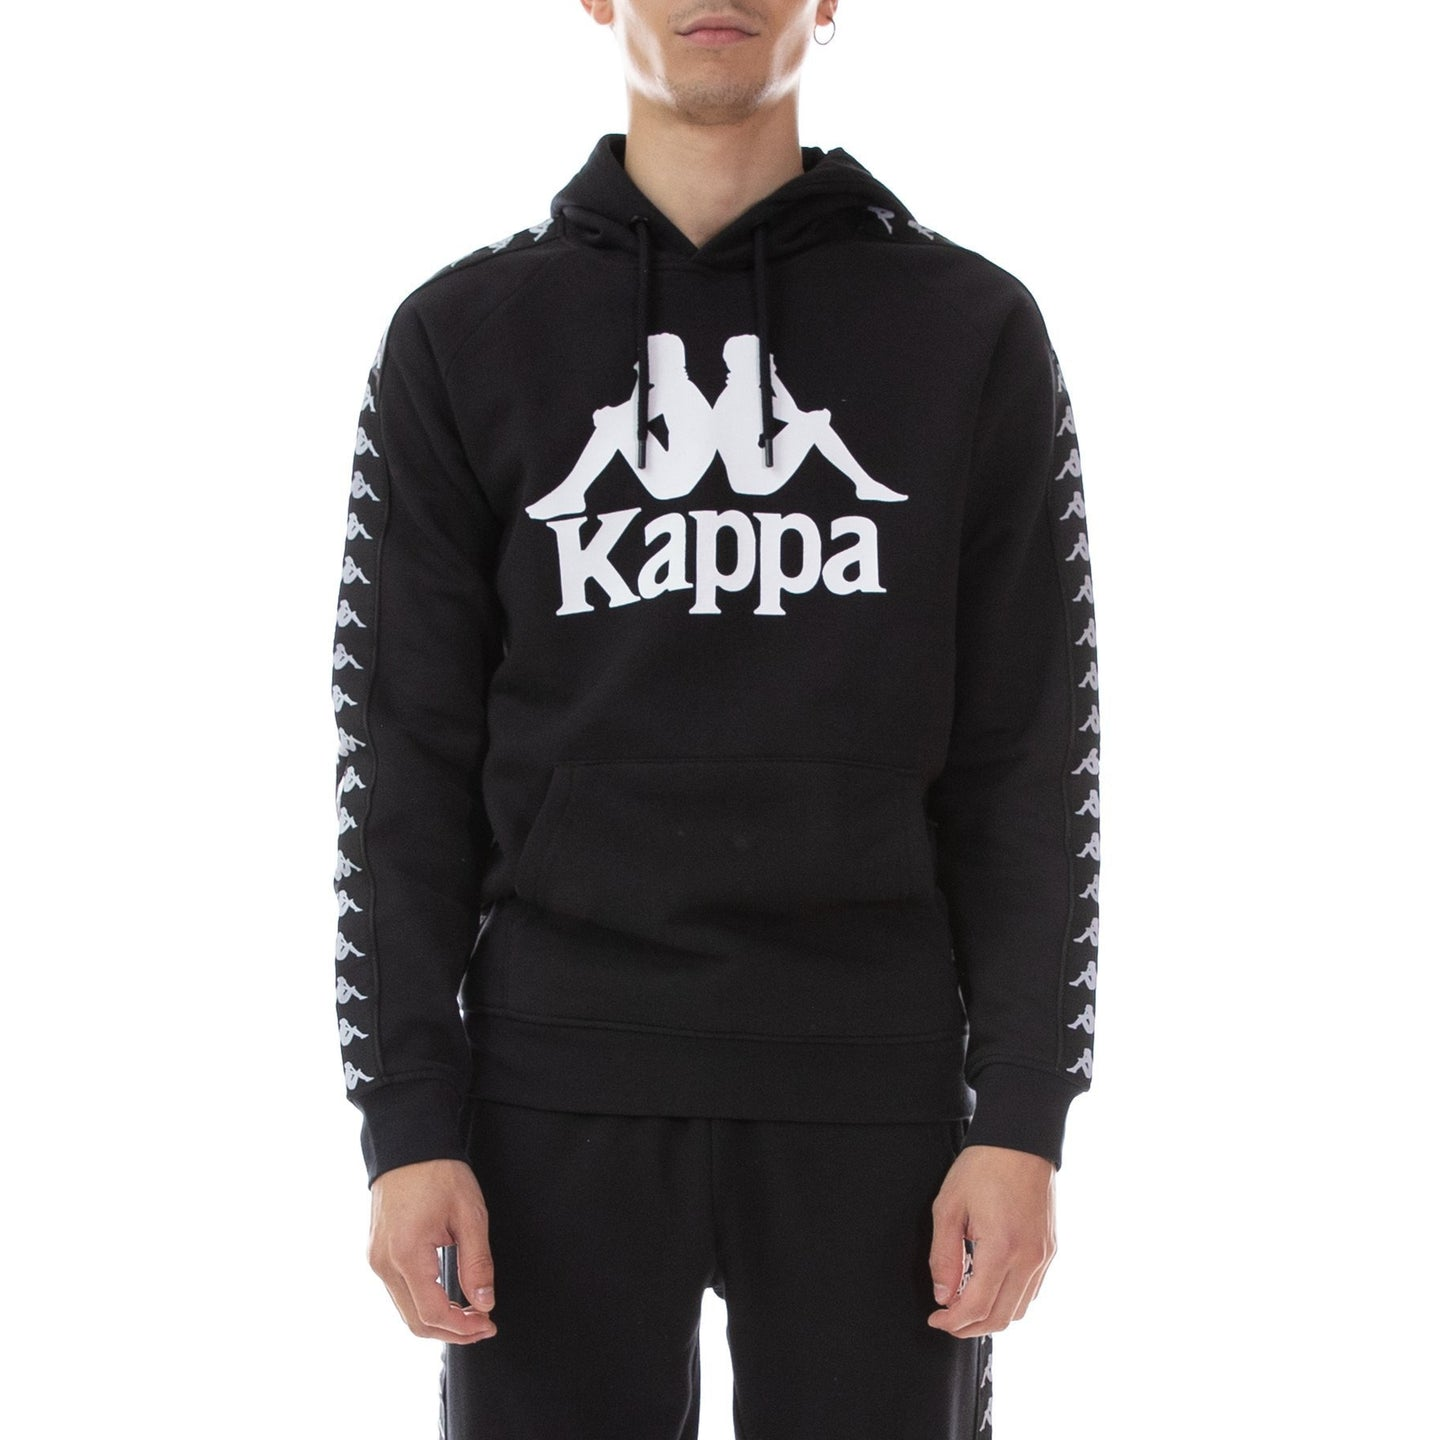 Kappa Black Authentic Hurtado Hoodie (3032WH20-981)